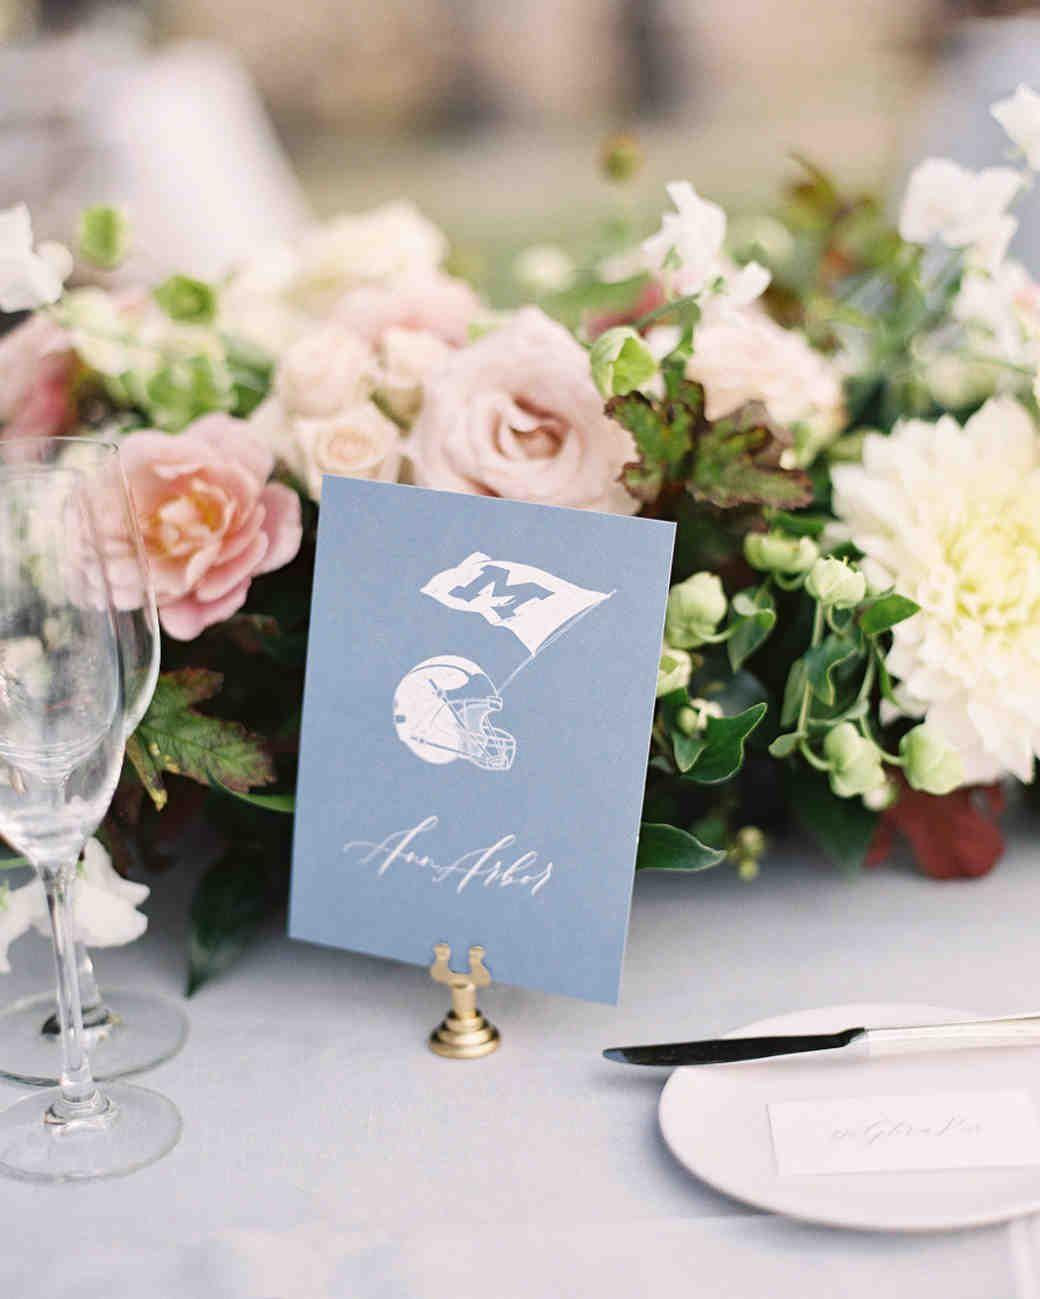 20 Wedding Flowers Ideas to Copy For Your BigDay